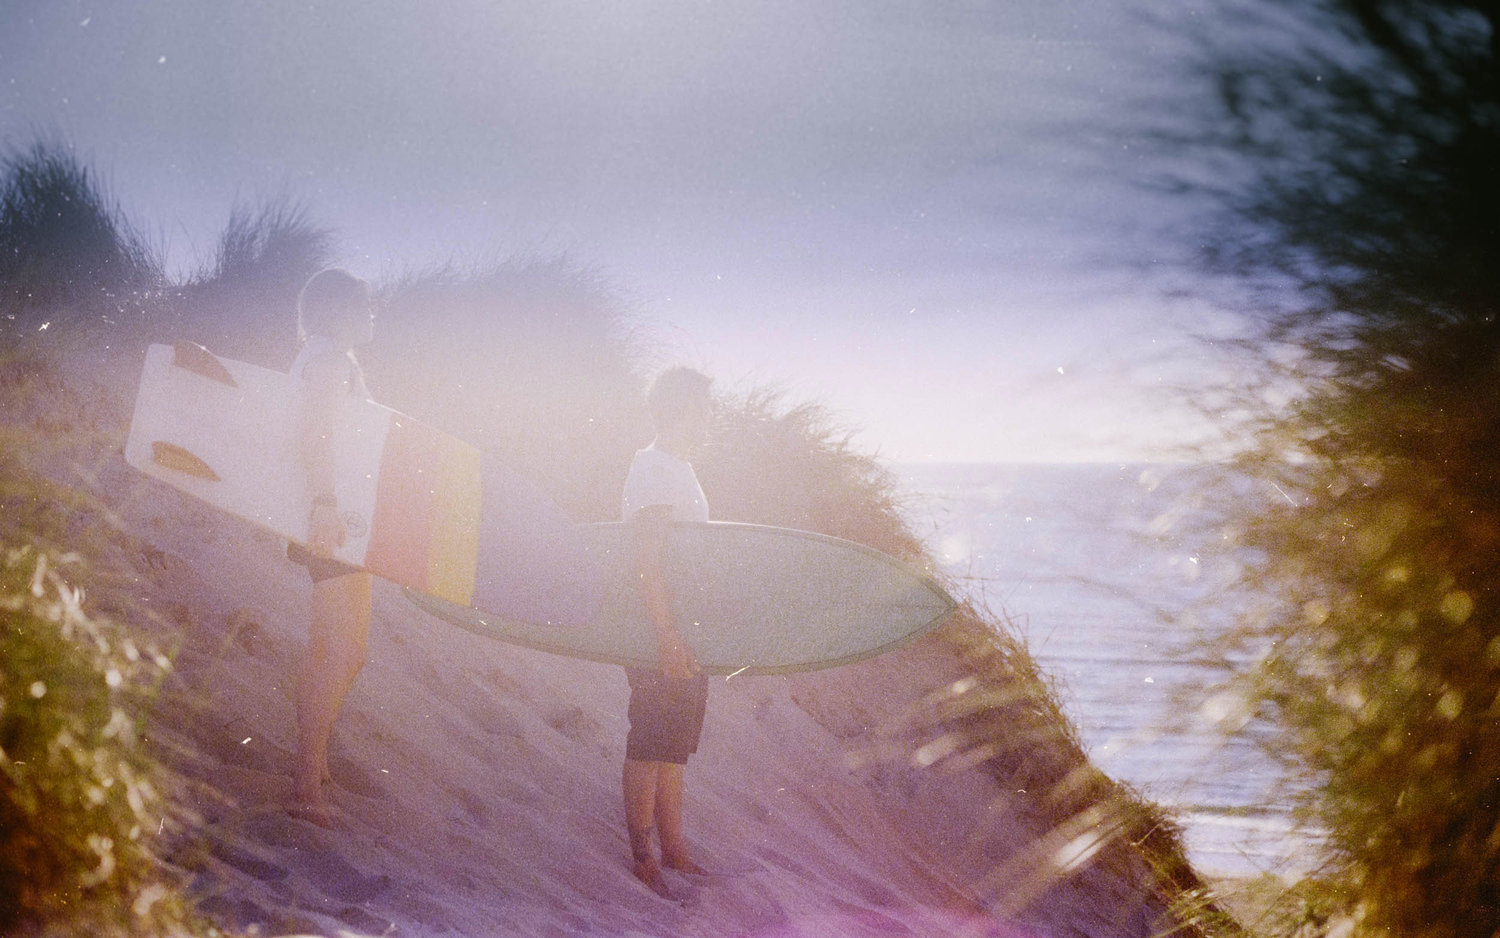 boy-girl-surfboards-image-2.jpeg